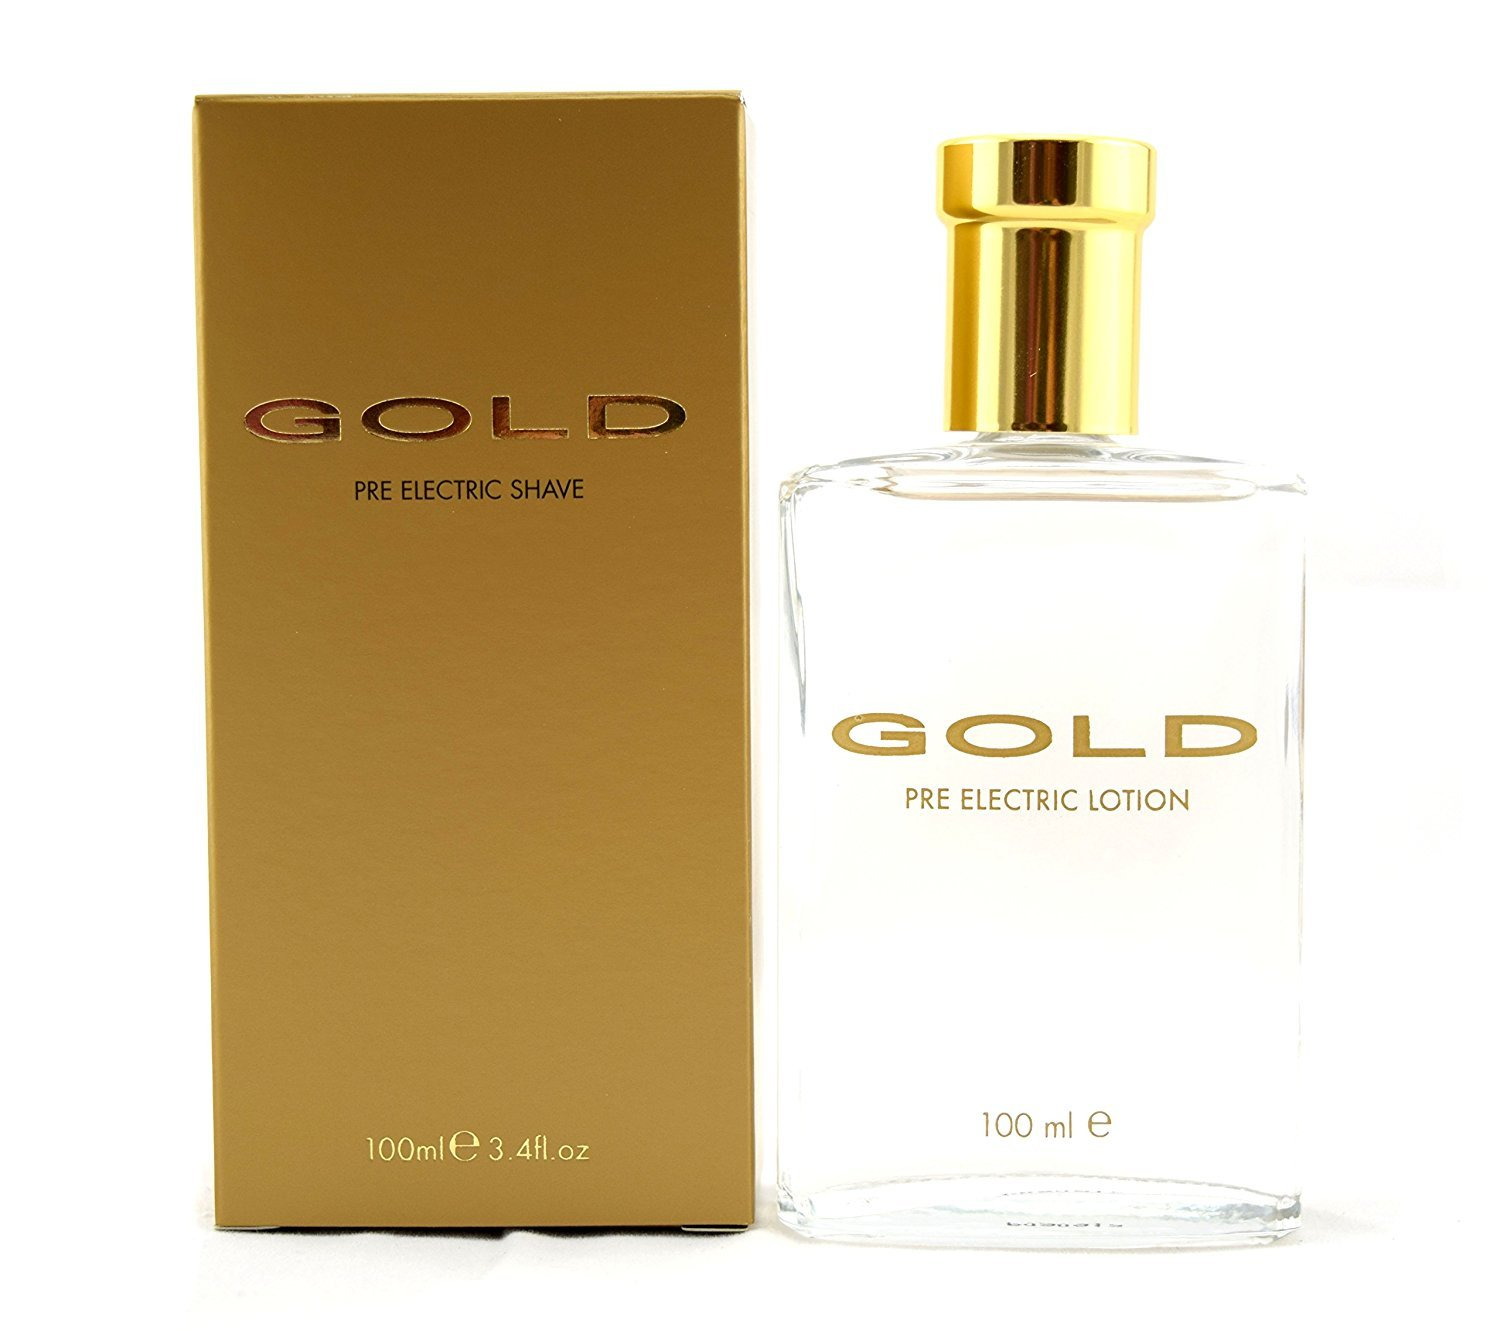 Gold By Parfums Bleu Pre Electric Shaving Lotion 50ml Amazon Co Uk